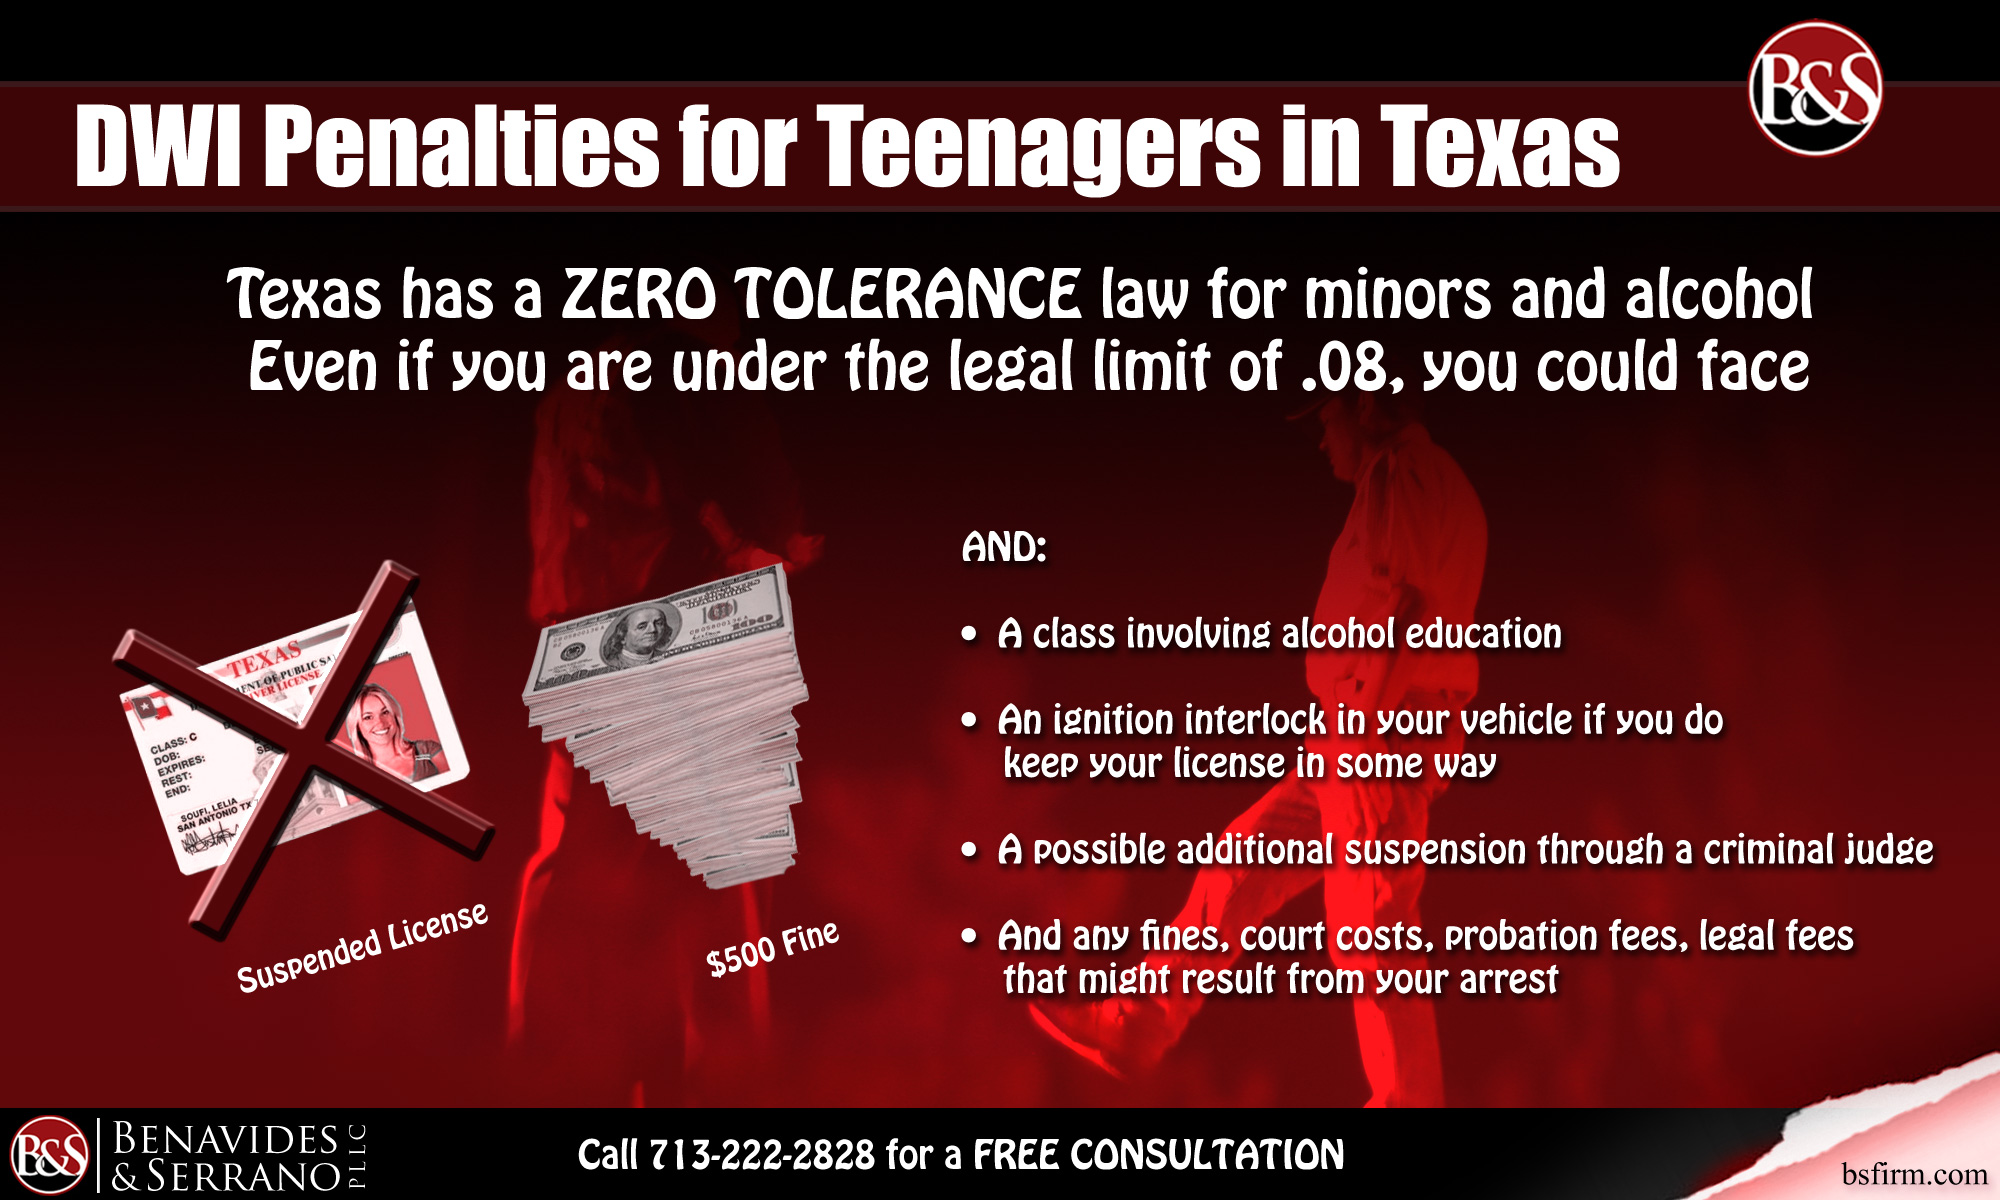 Underage DWI penalties in Texas